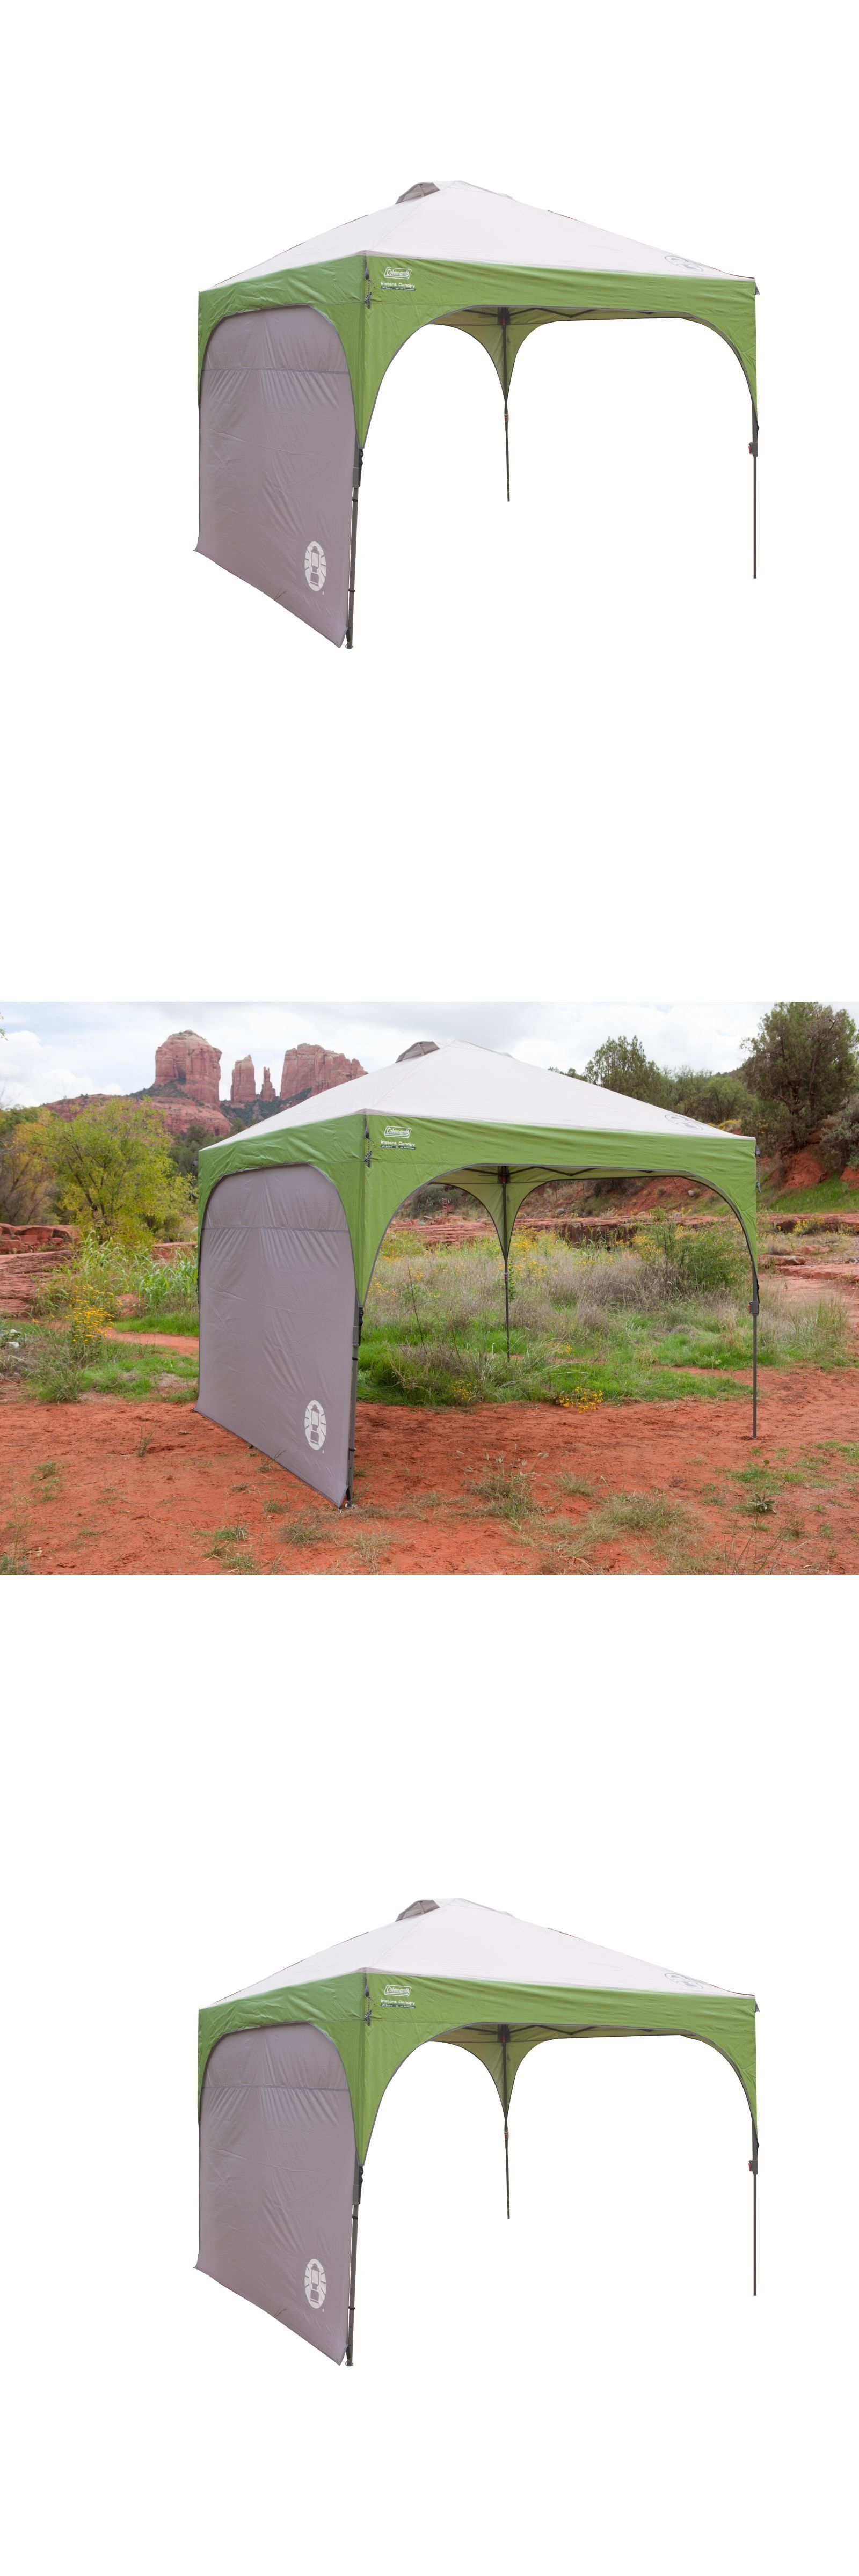 Tent and Canopy Accessories 36120 Instant Tent Outdoor Portable Shade Canopy Patio Yard Garden Picnic  sc 1 st  Pinterest & Tent and Canopy Accessories 36120: Instant Tent Outdoor Portable ...